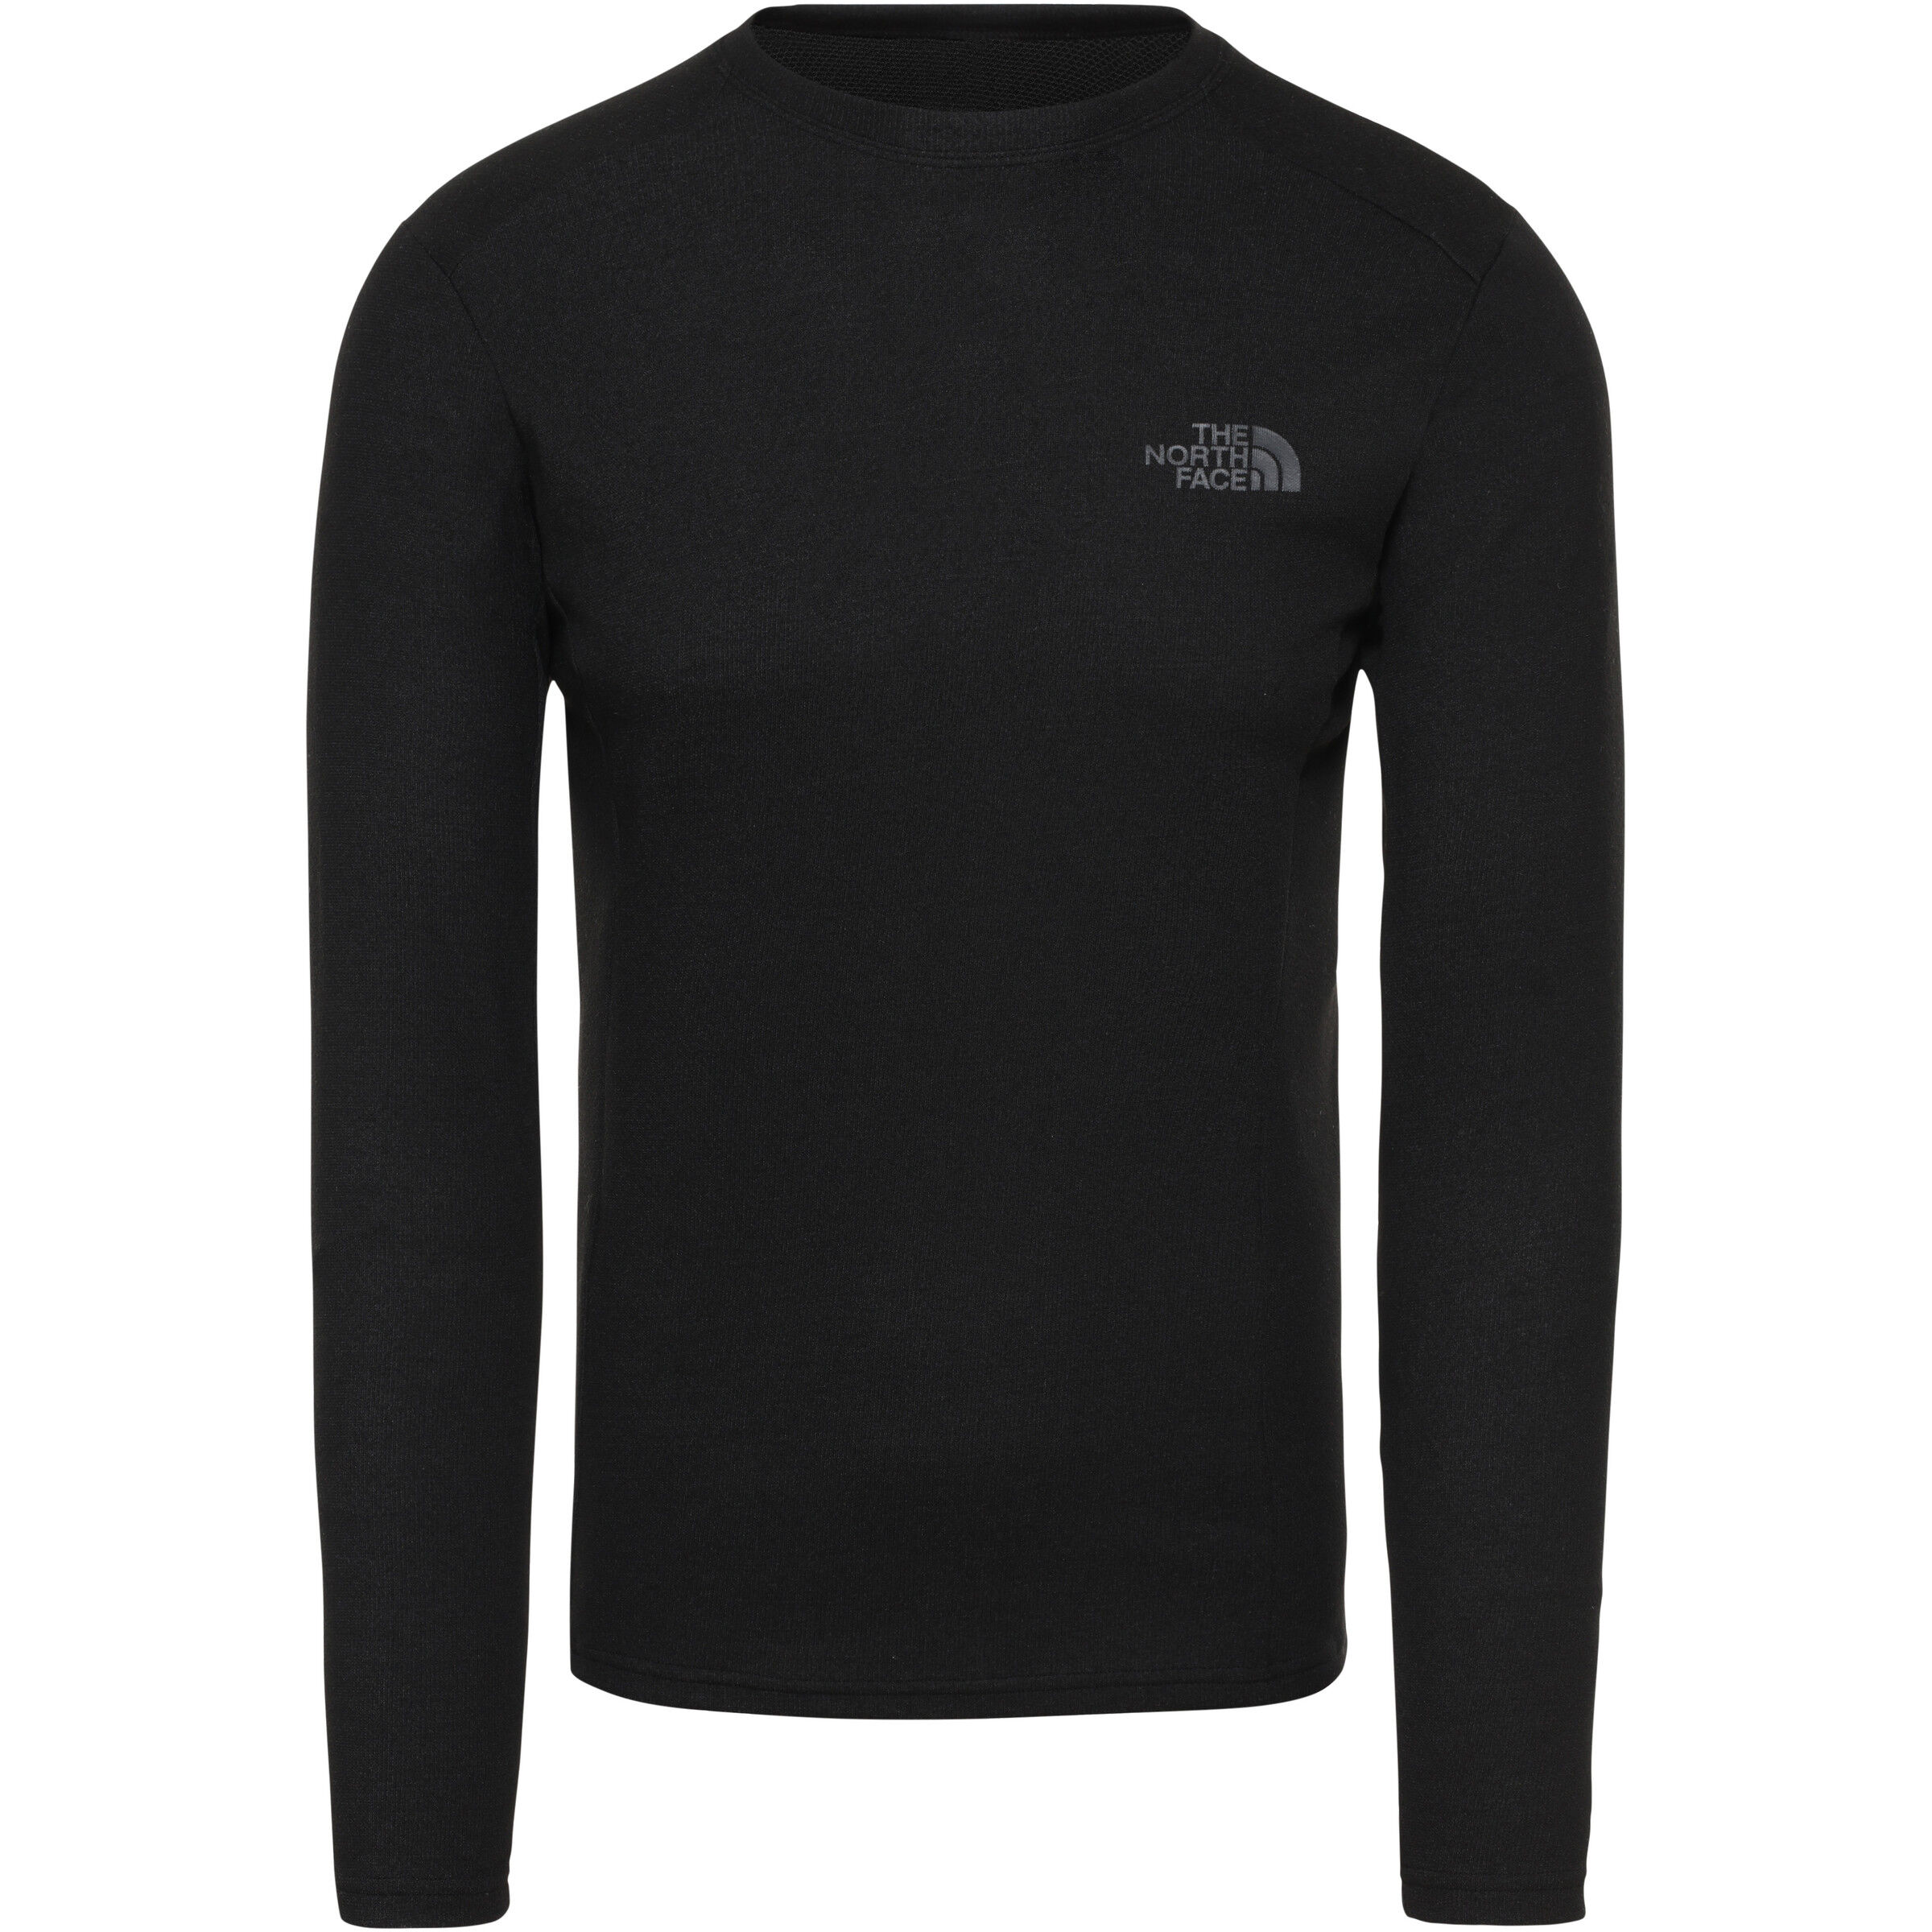 The North Face Easy Langarm Rundhalsshirt Herren tnf black